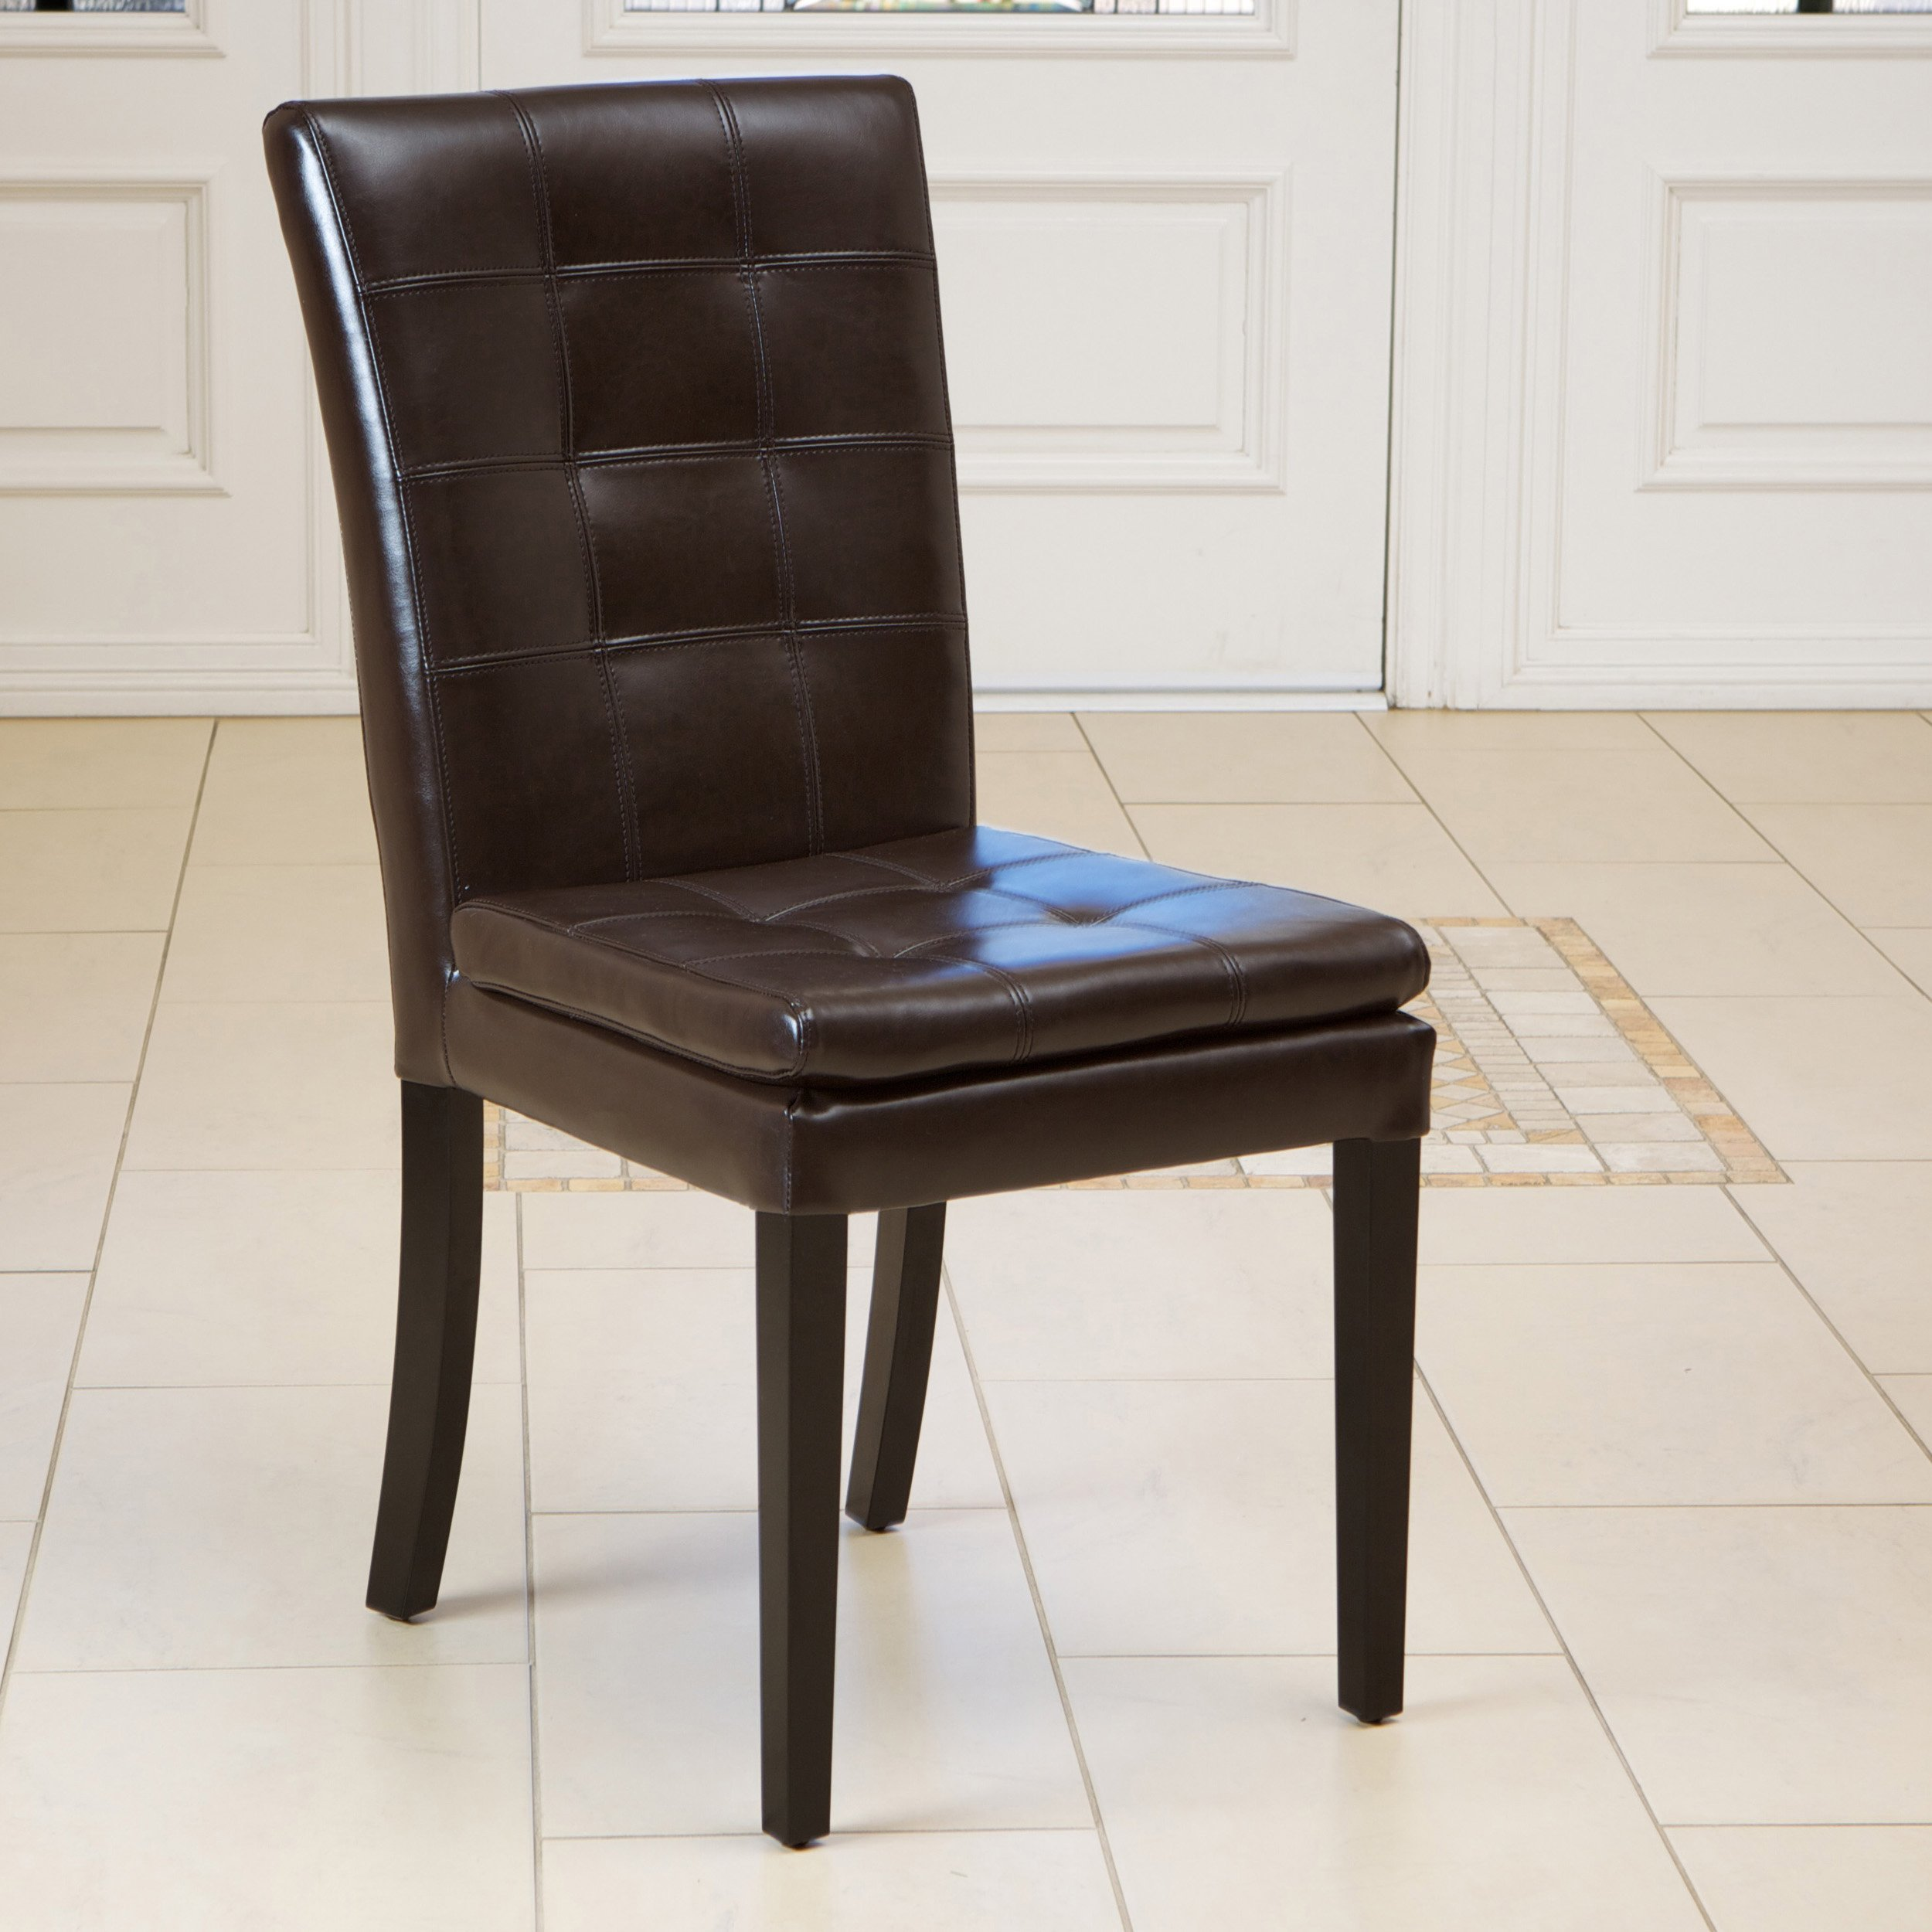 Barrington brown leather dining chairs set of 2 for Brown leather dining chairs